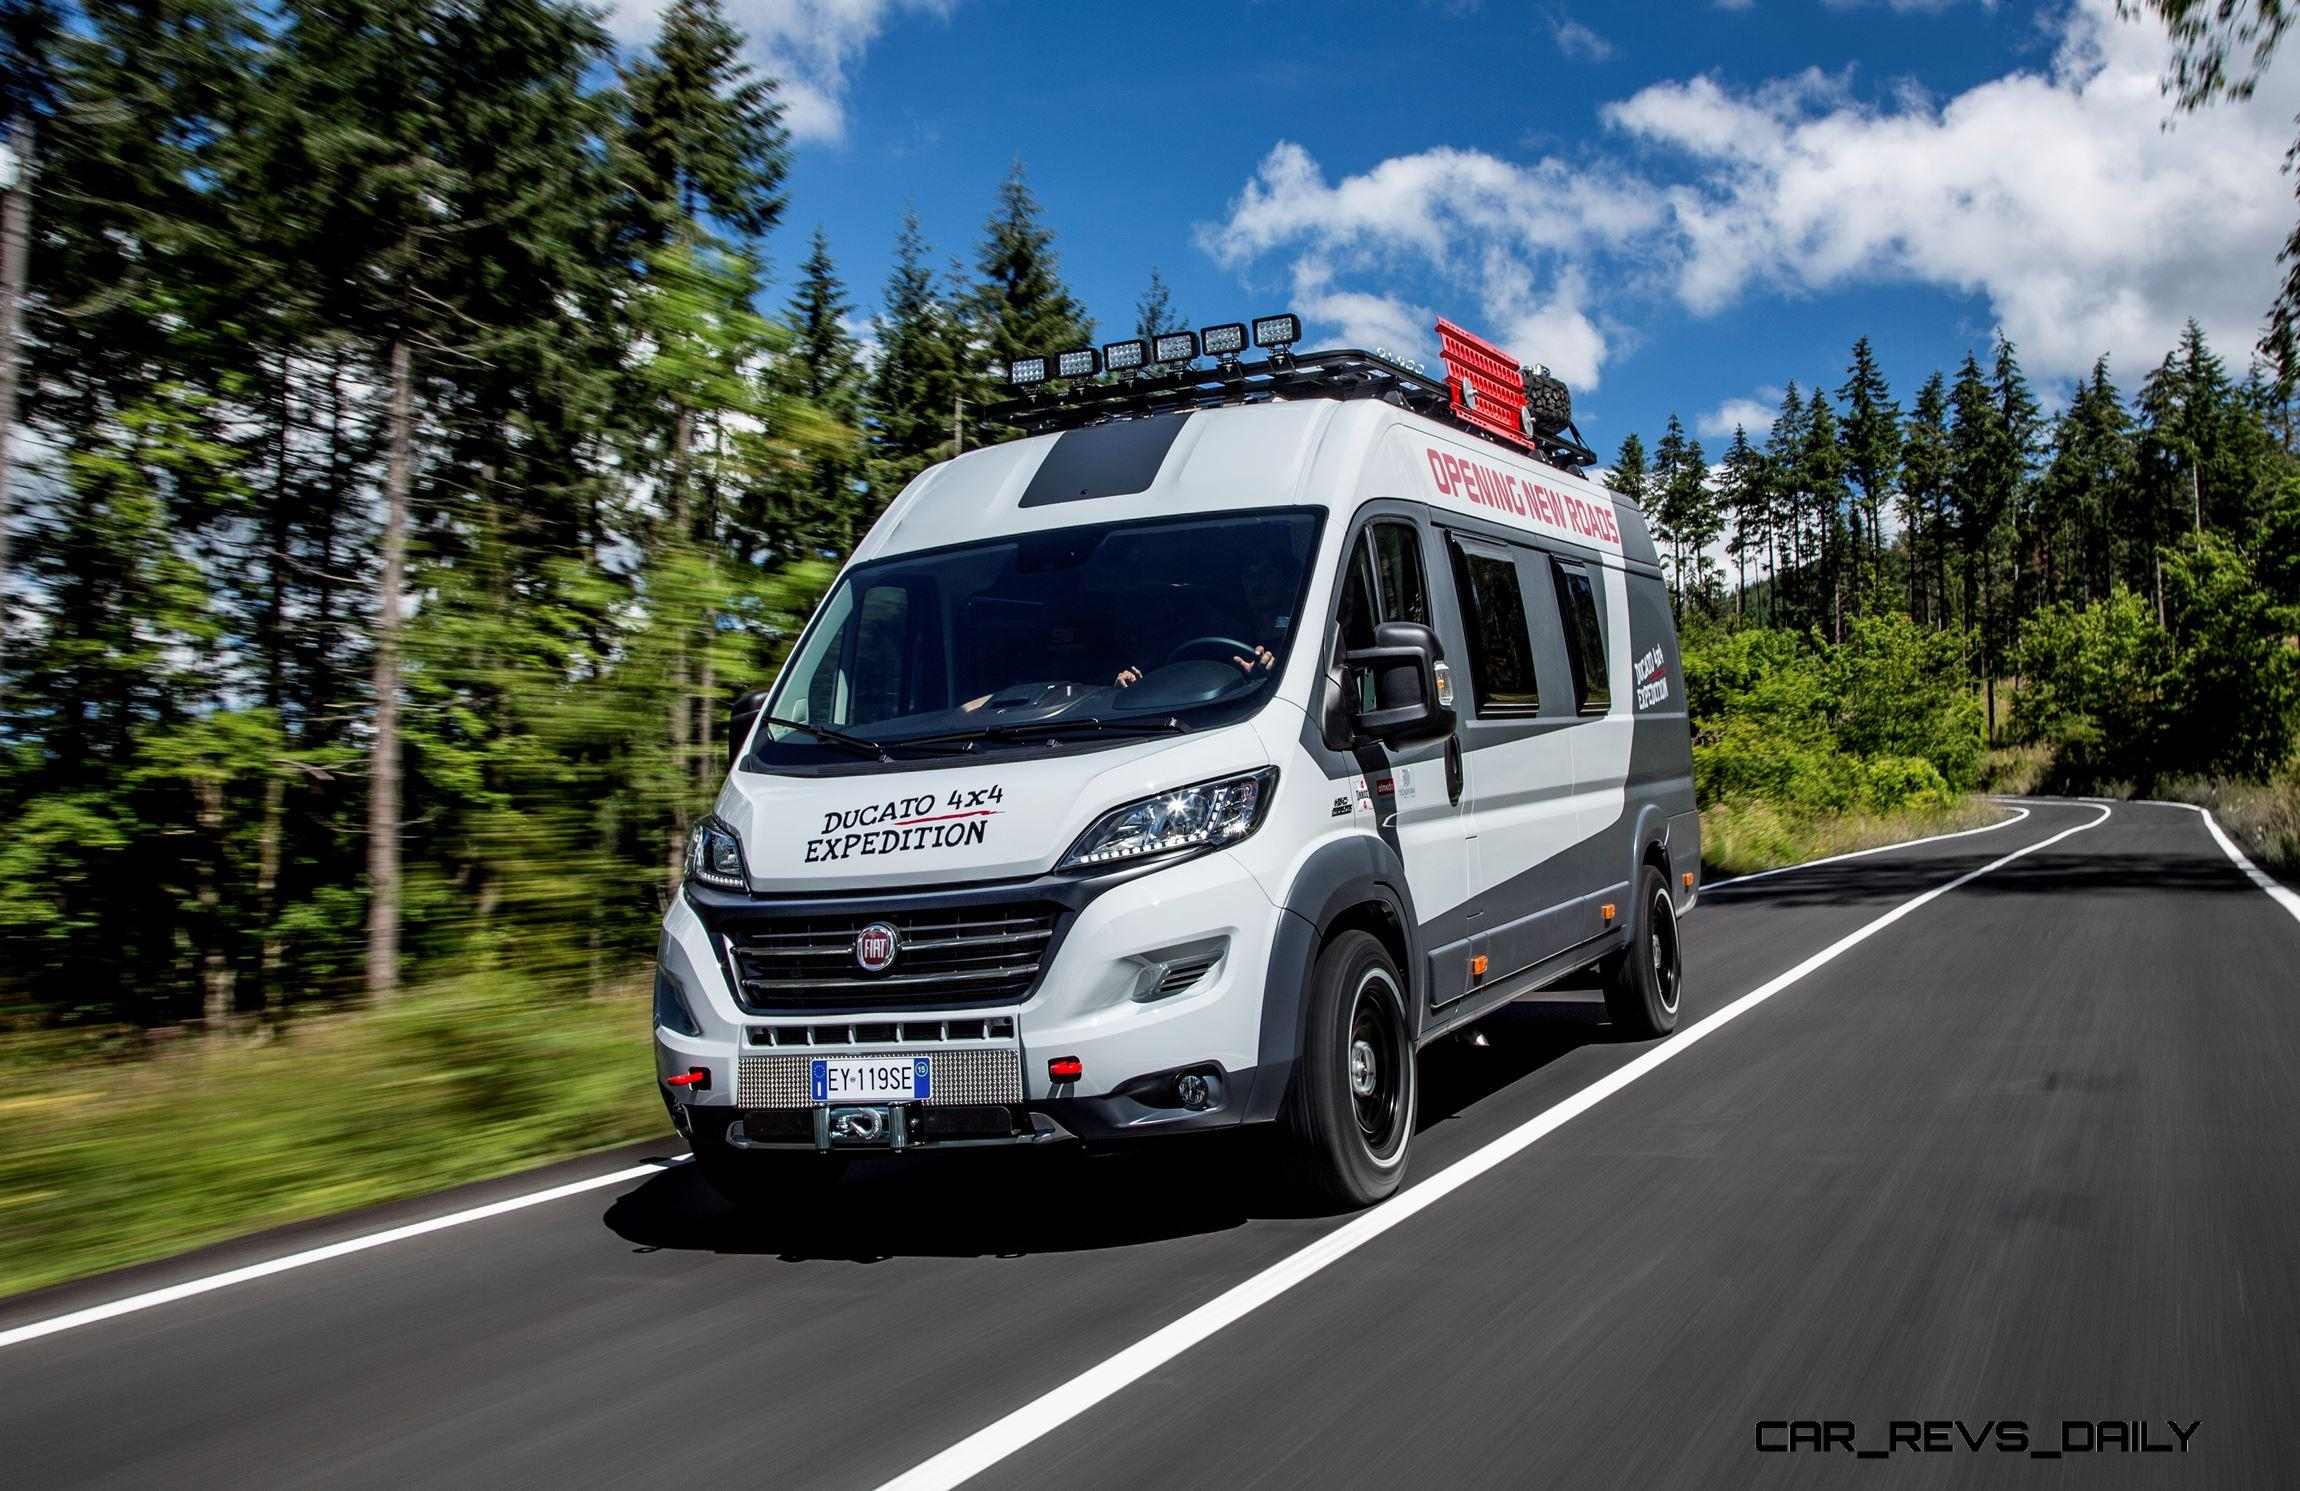 2015 Fiat Ducato 4x4 Expedition Concept Teases New